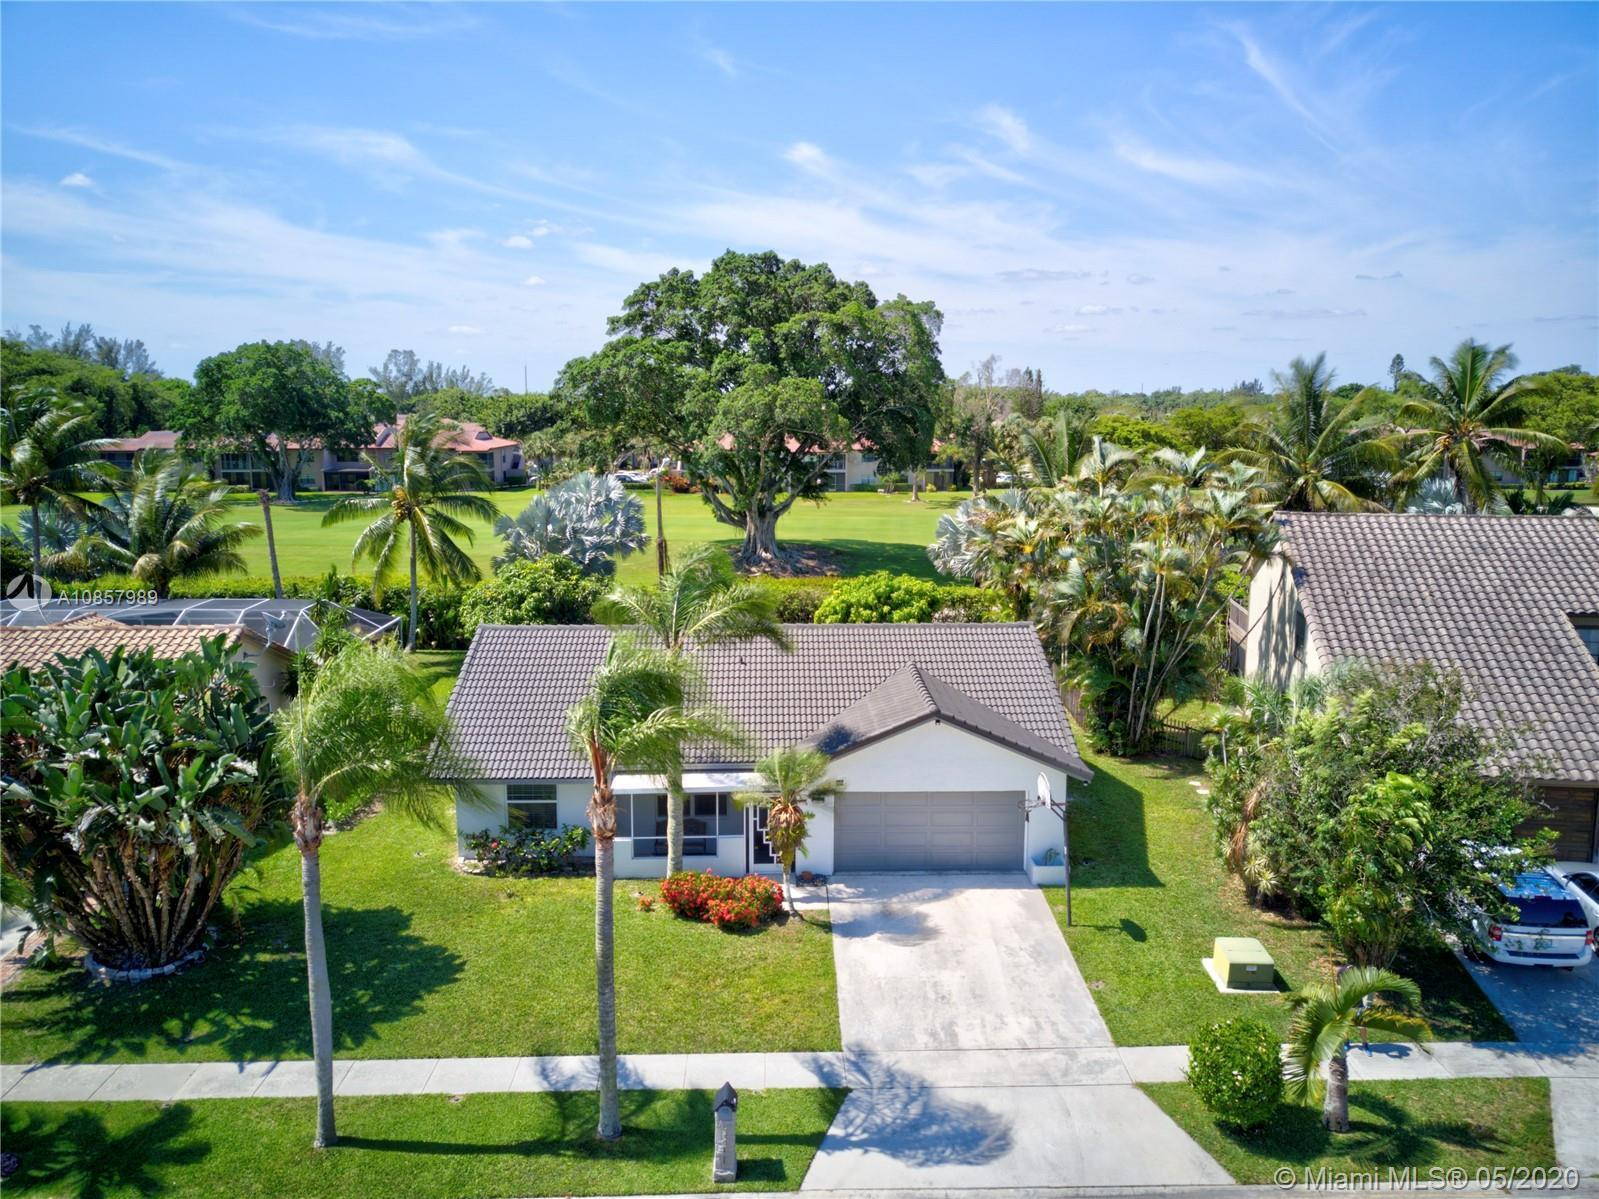 Fantastic home in one of the most desired neighborhoods in Boca, a rare find! Clean as a whistle and